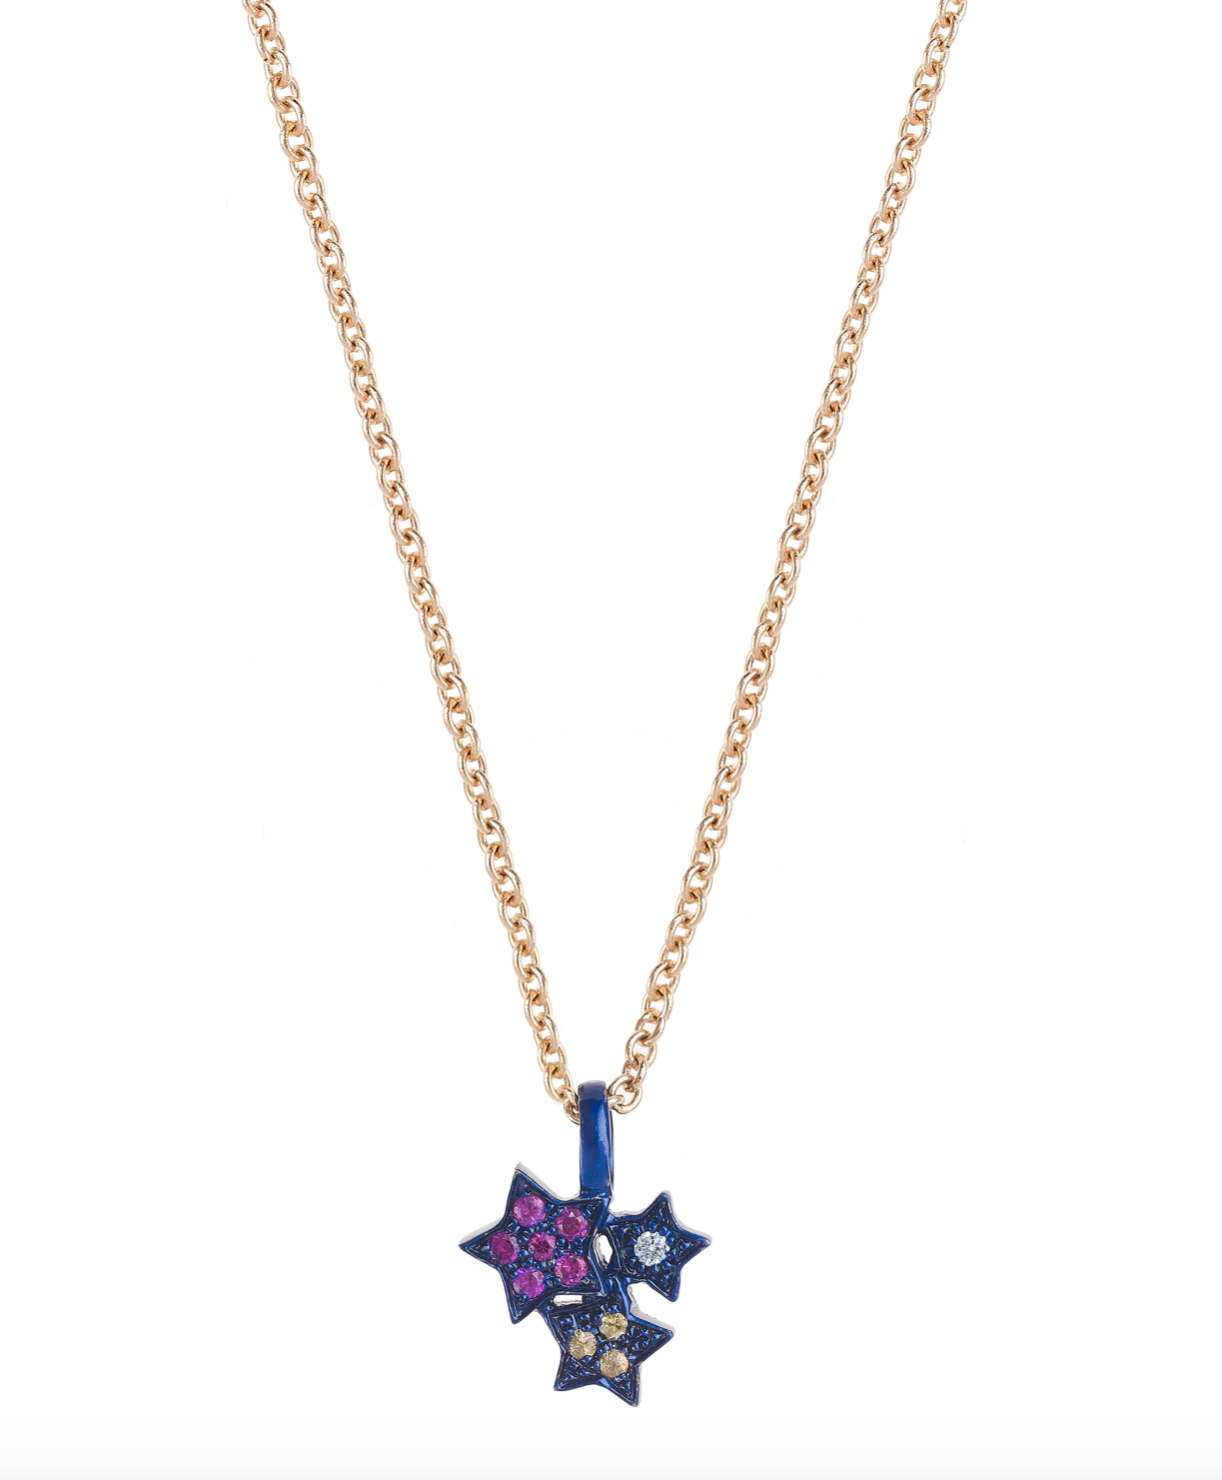 Midnight Colorful Star Cluster Necklace by Marmari on curated-crowd.com